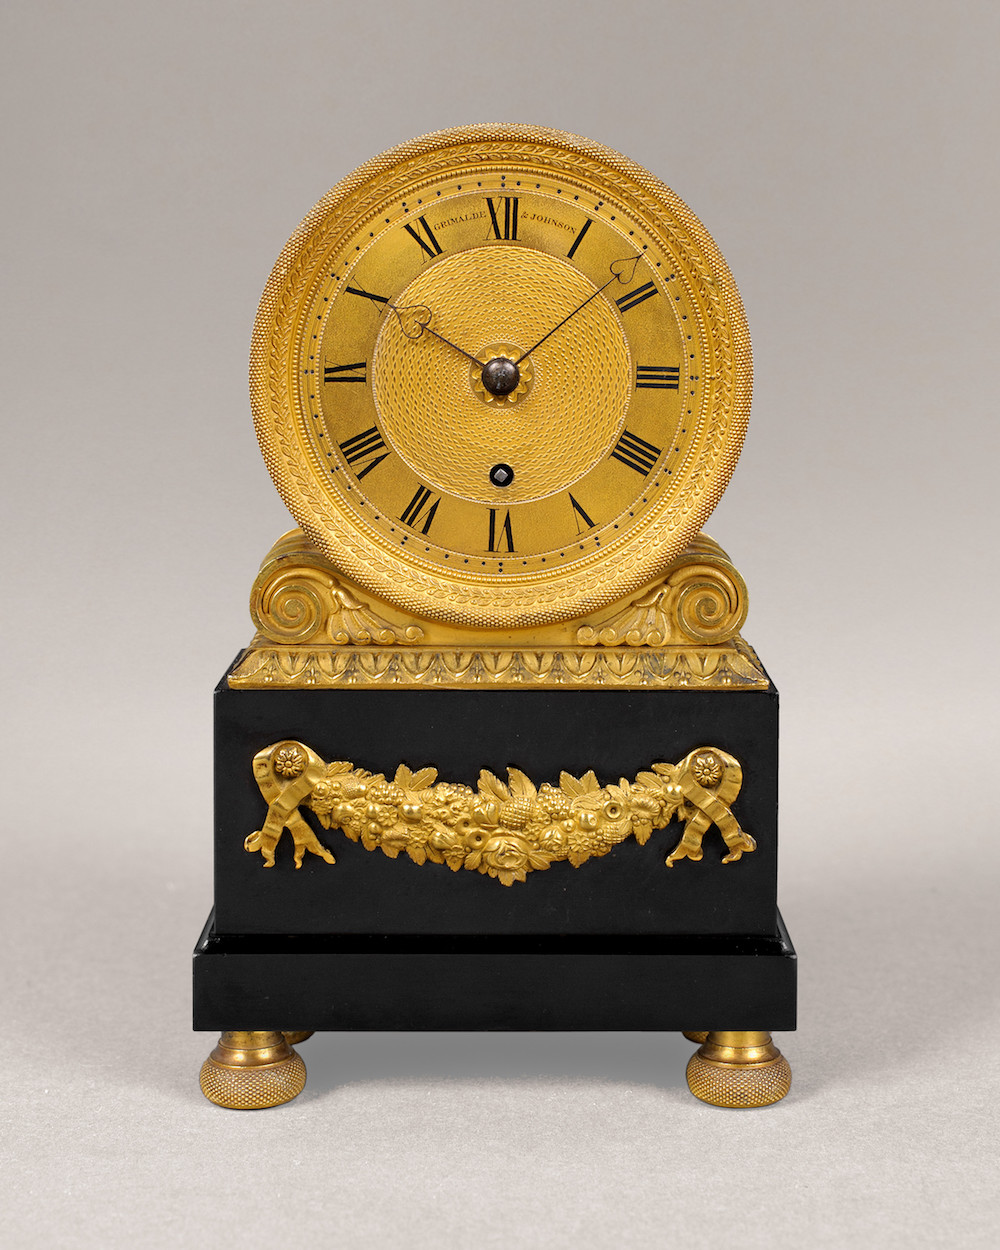 001a-fine-early-19th-century-library-timepiece-by-grimalde-johnson.jpg